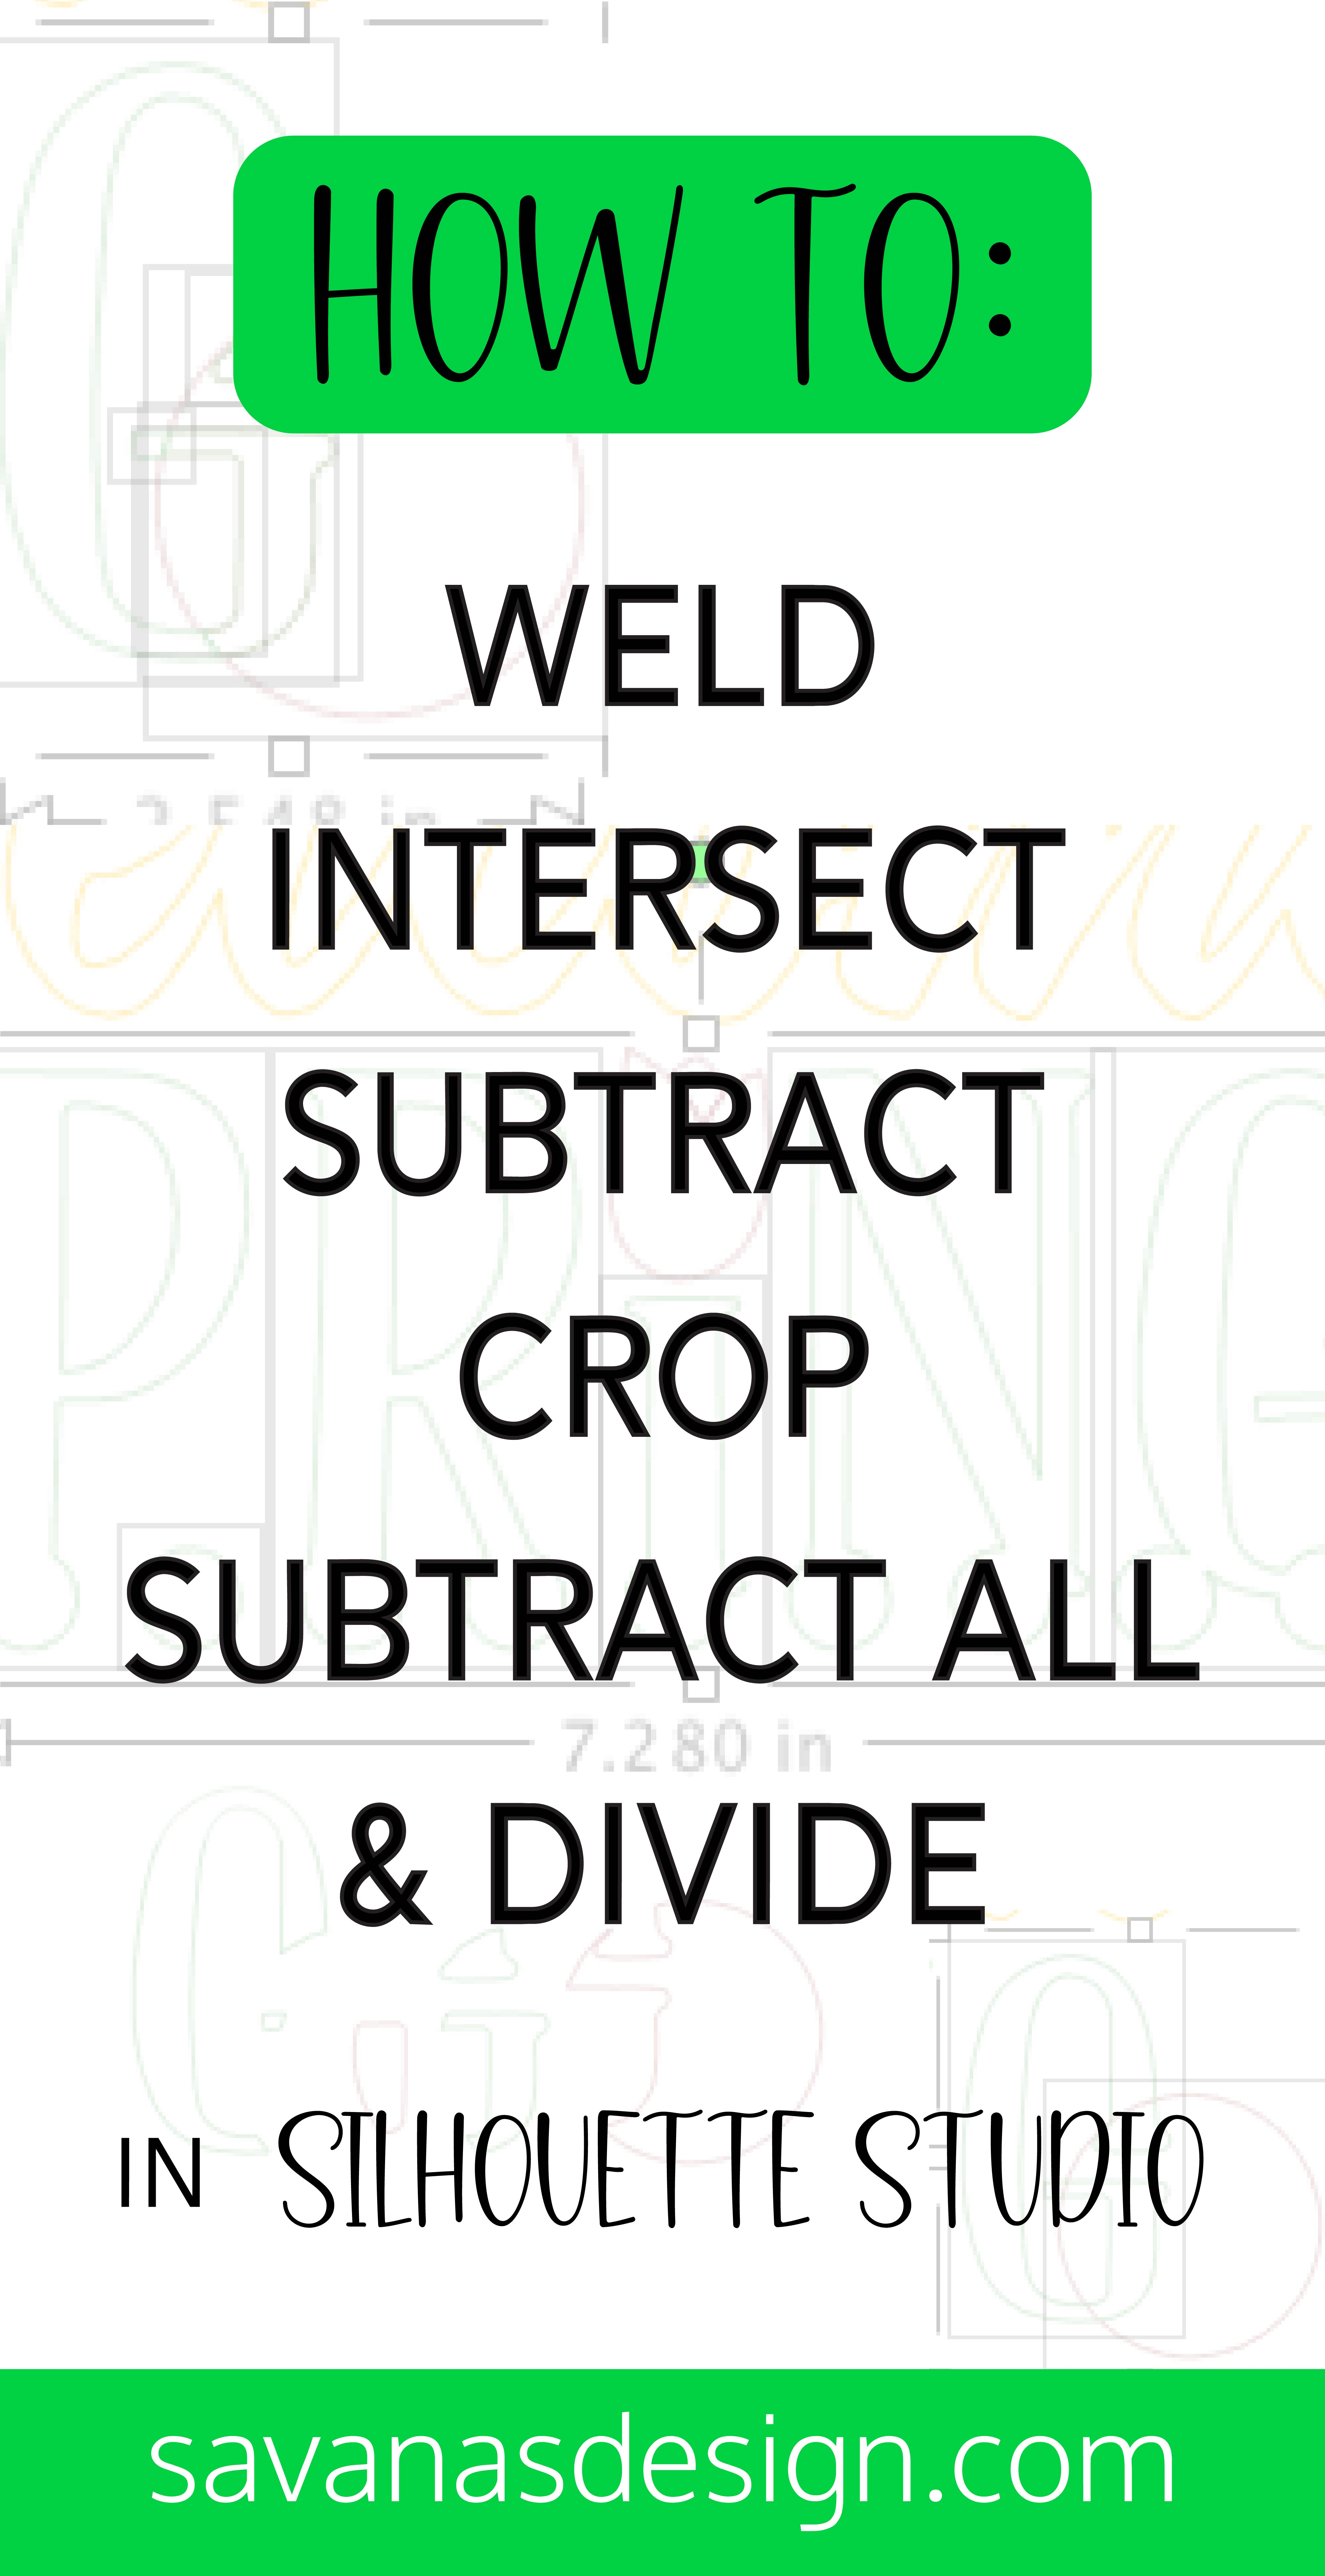 Pinterest How to Weld, Intersect, Subtract, Crop, Subtract All, and Divide in Silhouette Studio